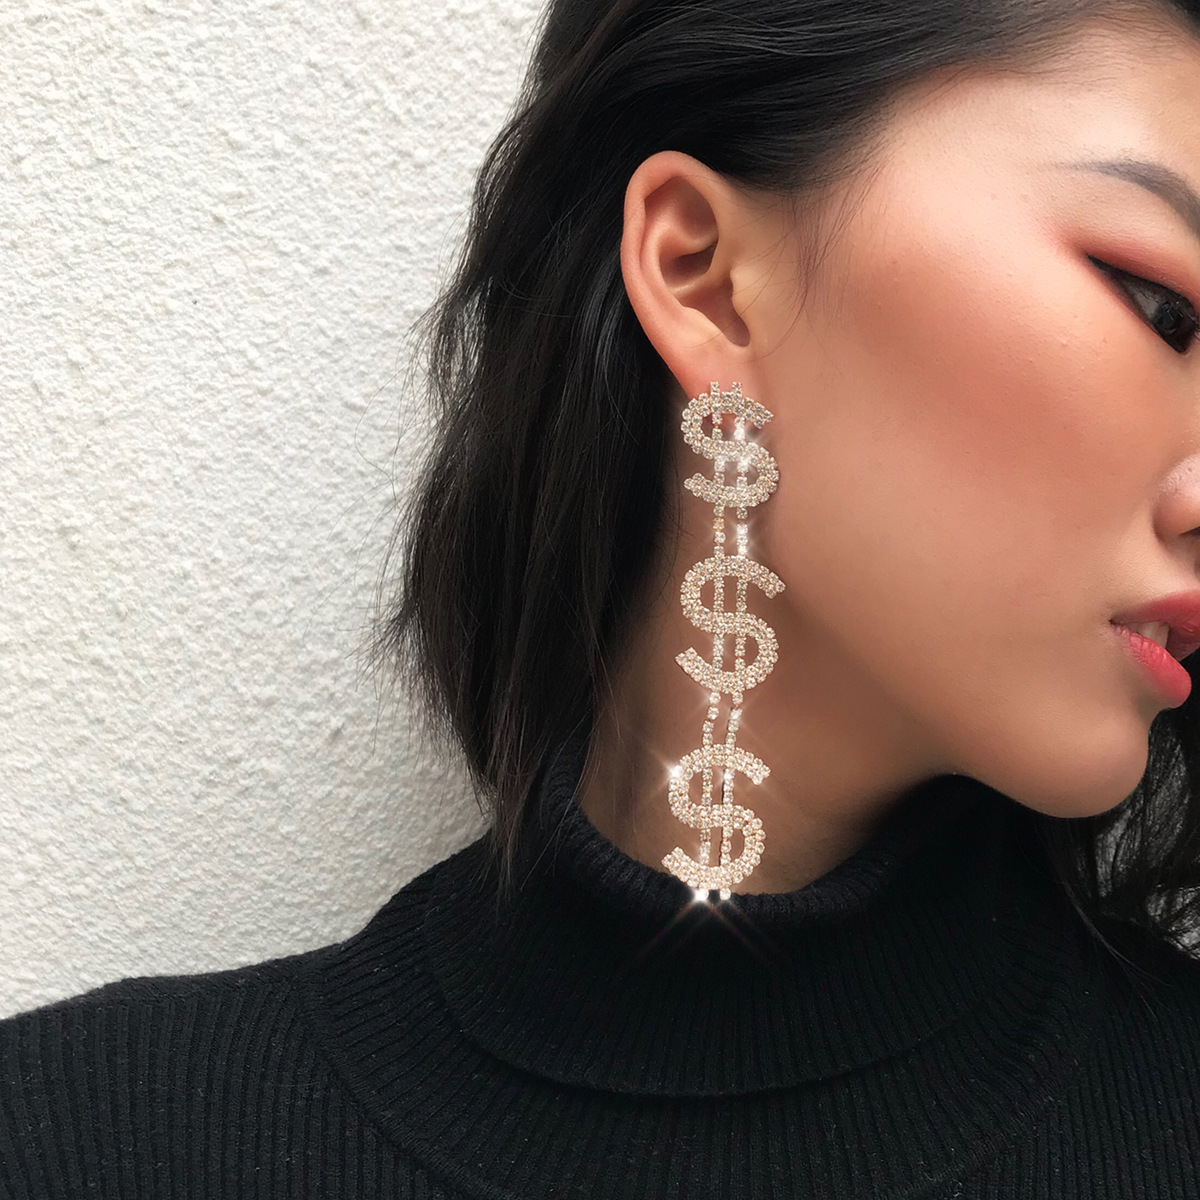 New Exaggerated Dollar Rhinestone Long Earrings For Women Girls Party Wedding Jewelry Shiny Dangle Party Wedding Earring 2020